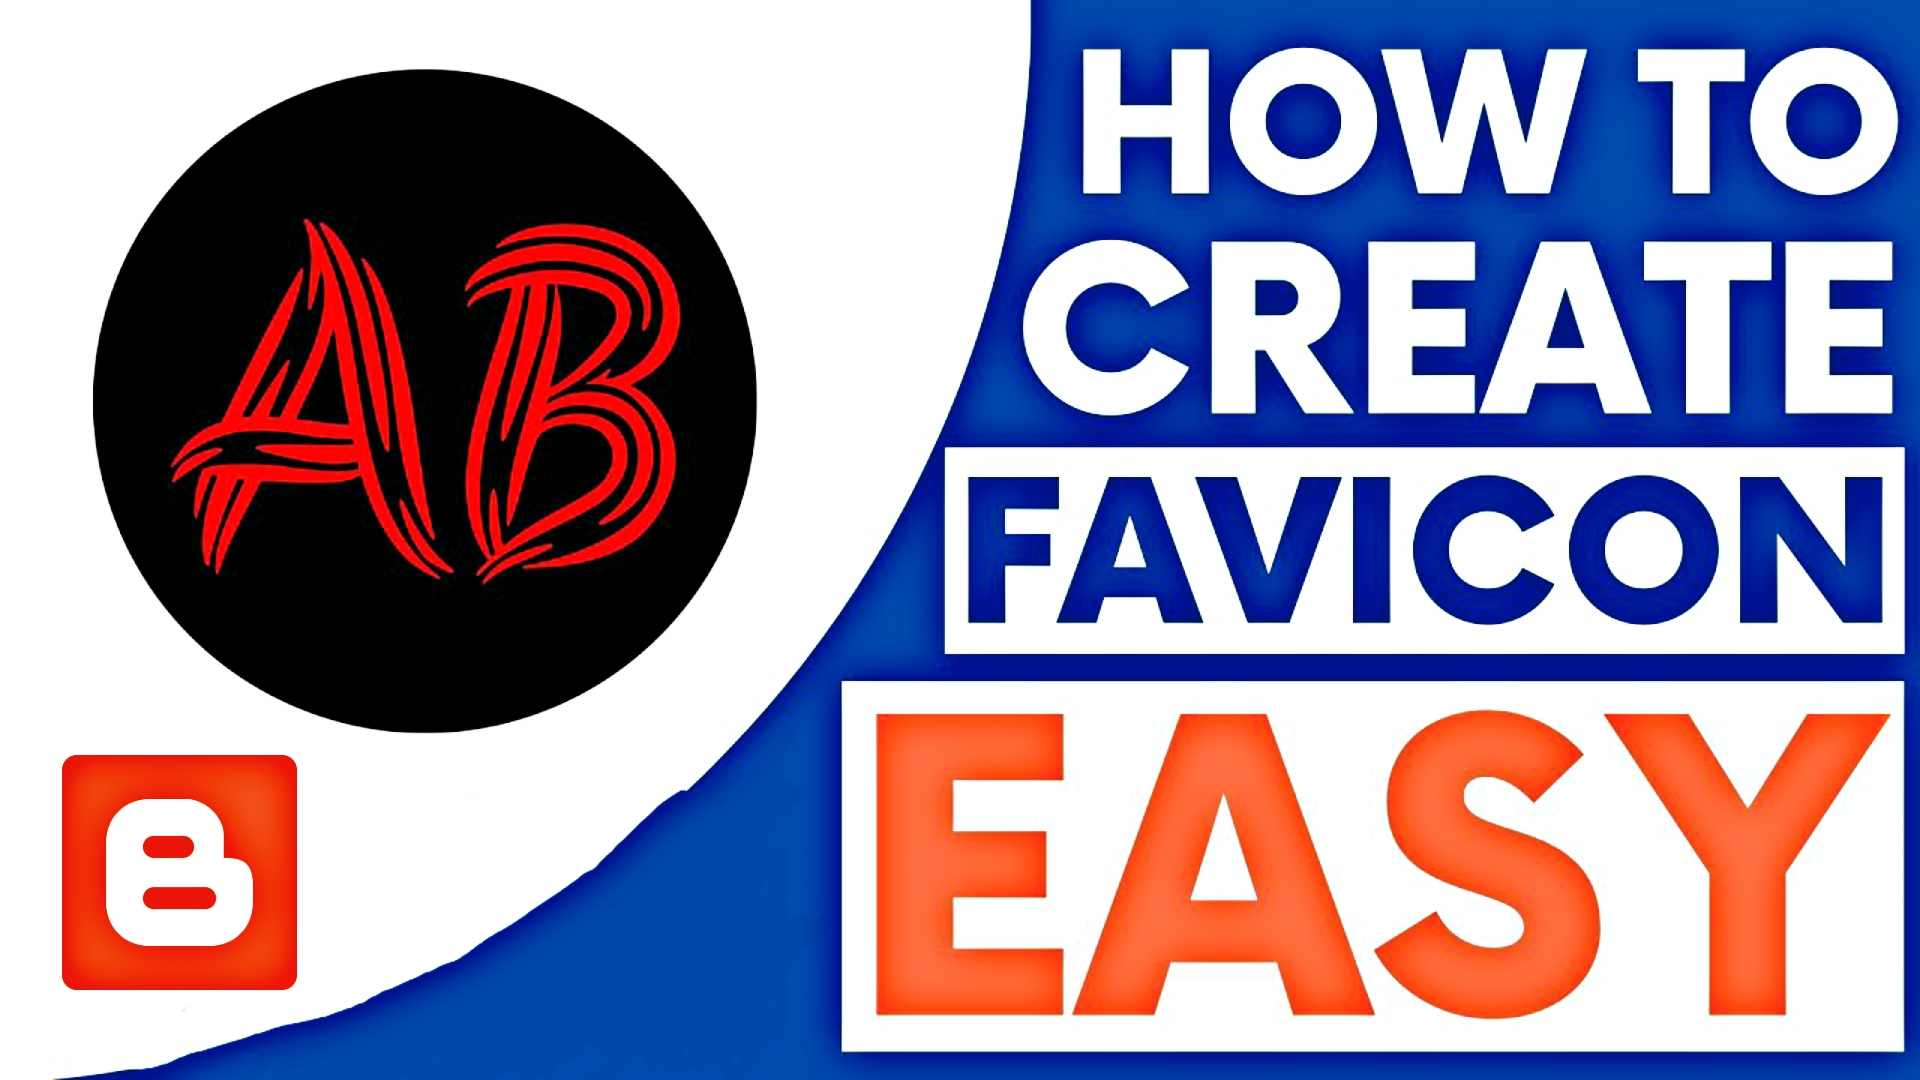 How-to-Create-and-Add-a-Custom-Favicon-to-your-Blog